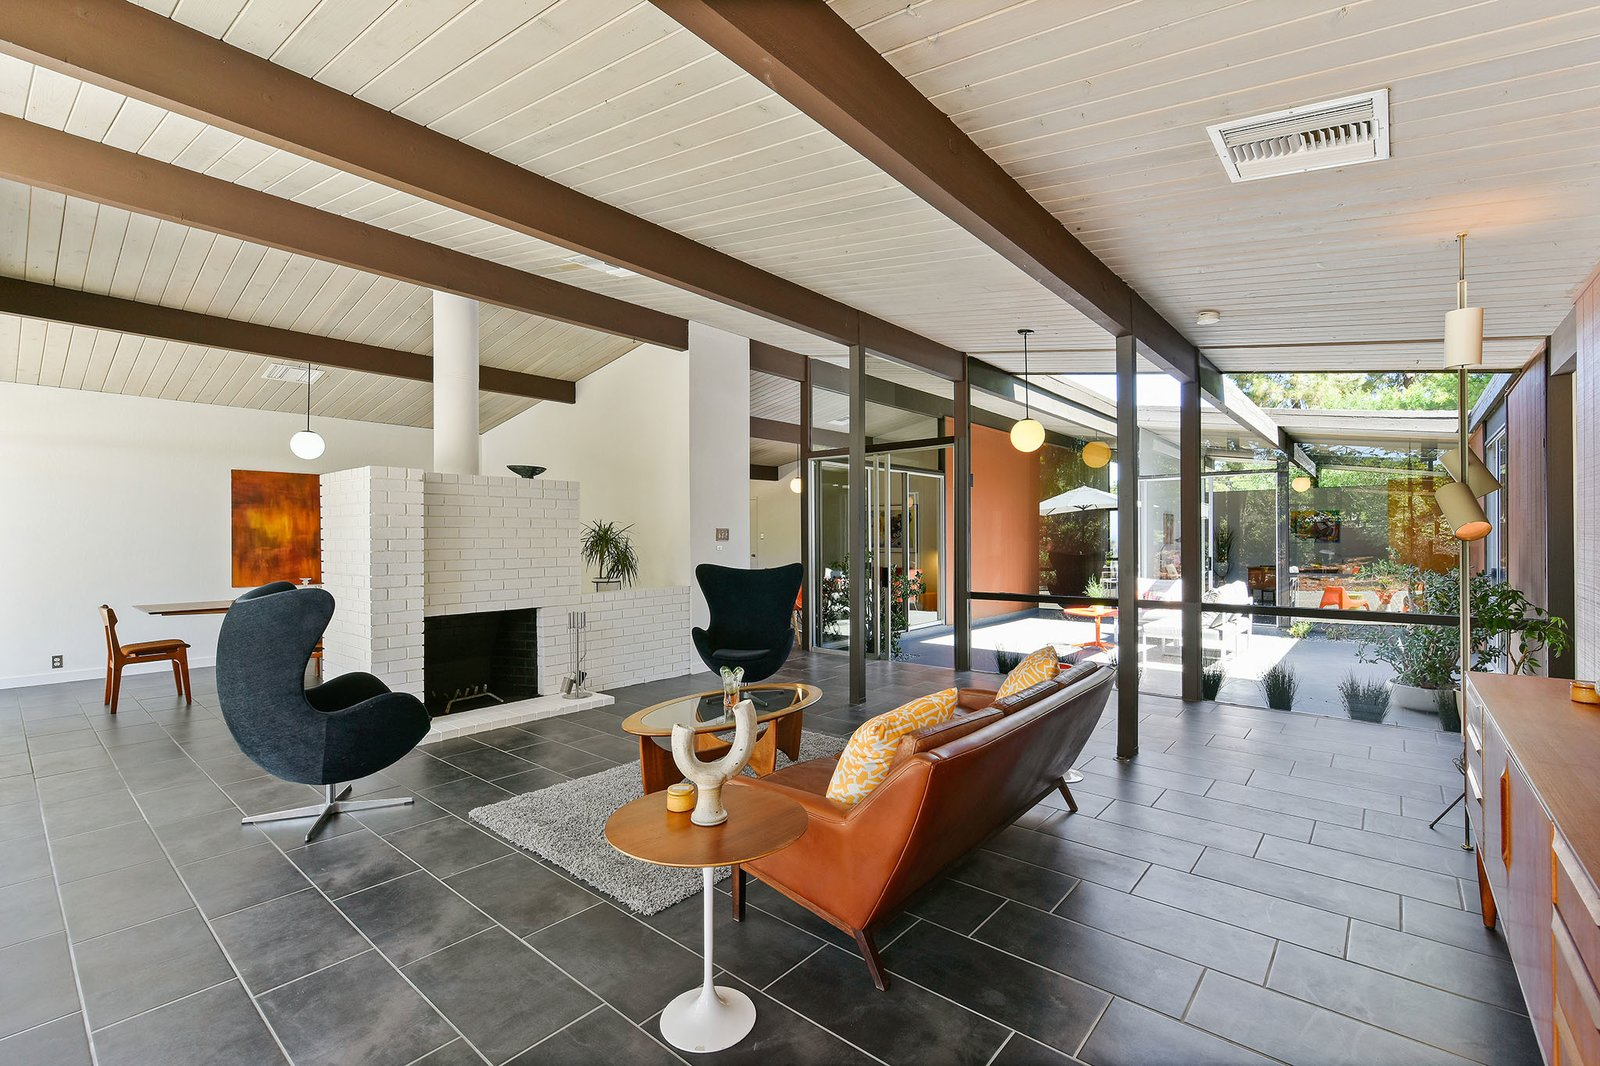 Living, Wood Burning, Porcelain Tile, Sofa, Coffee Tables, End Tables, Pendant, Chair, and Rug The expansive open-plan living area is also bright and airy.     Living Porcelain Tile End Tables Photos from A Bright and Breezy Eichler Hits the Market at $1.45M in California